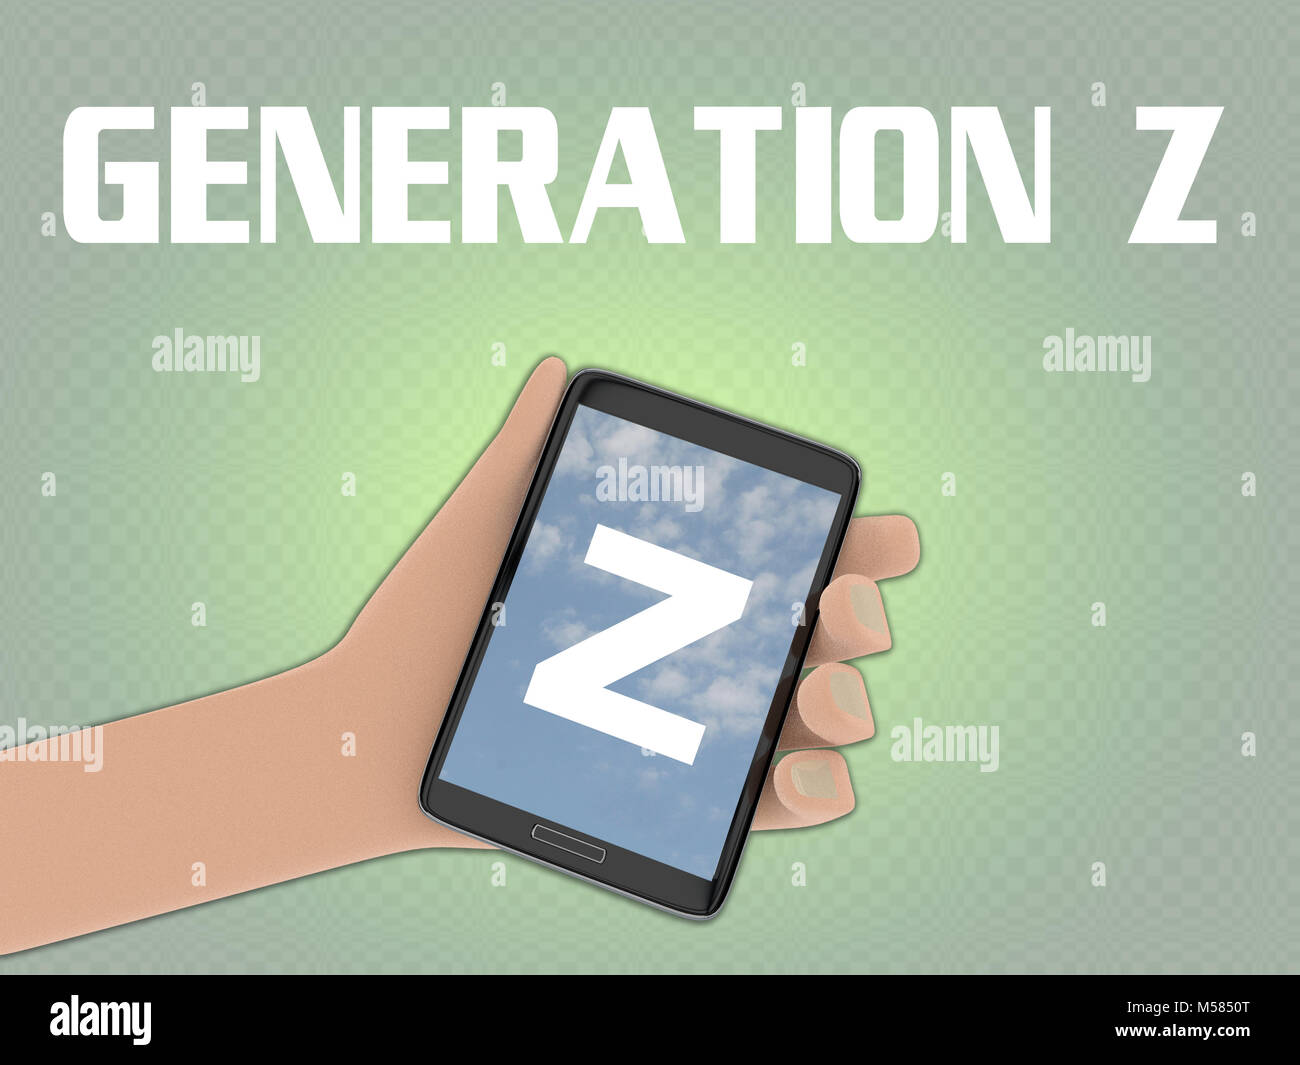 3D illustration of Z script on the screen of a cellulr phone held by hand, isolated on pale green gradient, with - Stock Image